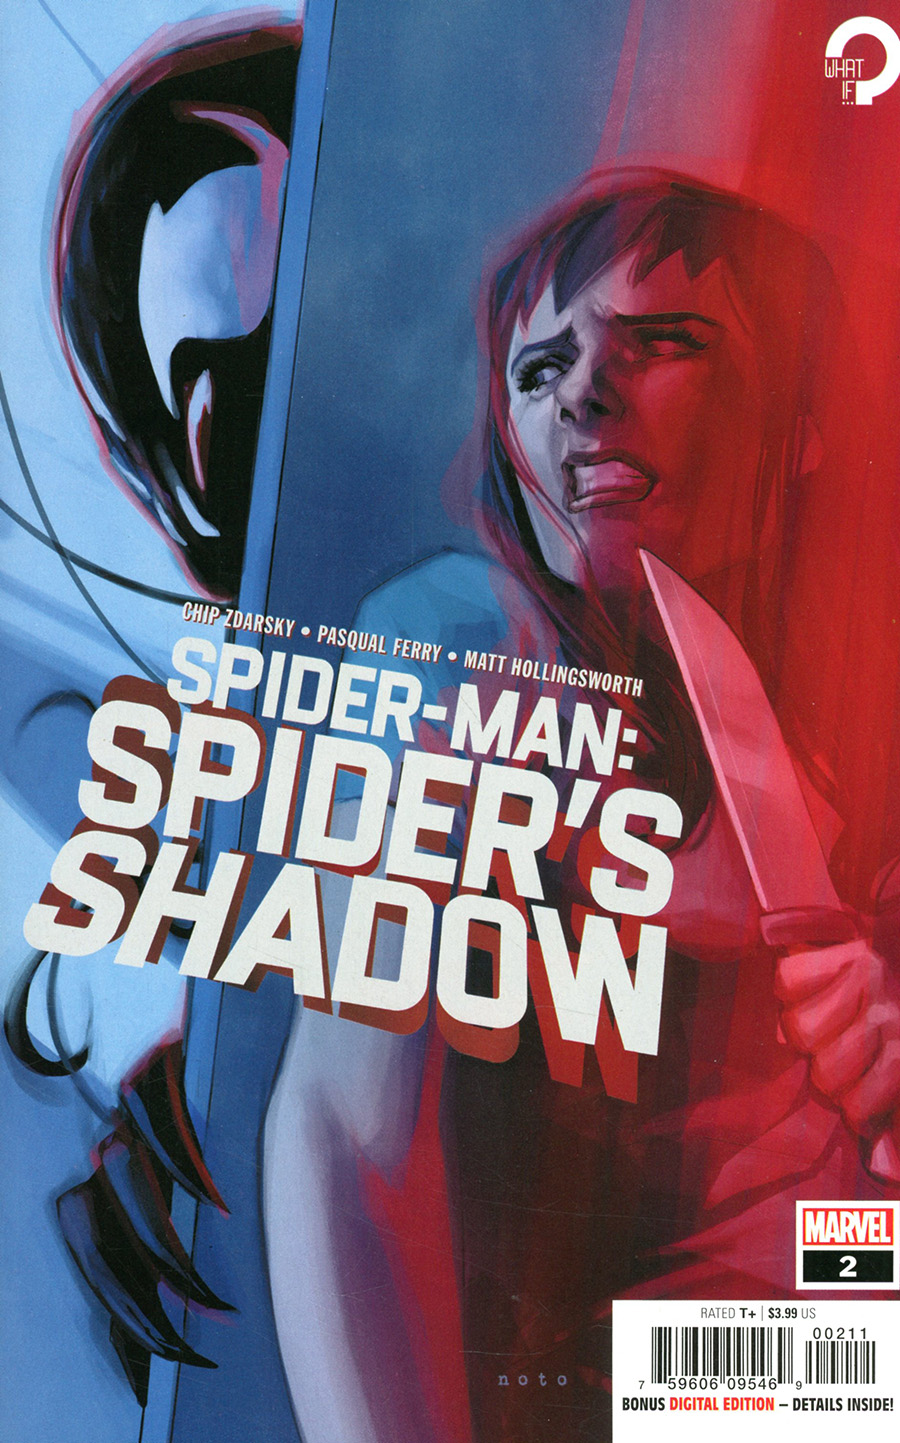 Spider-Man Spiders Shadow #2 Cover A Regular Phil Noto Cover (Limit 1 Per Customer)